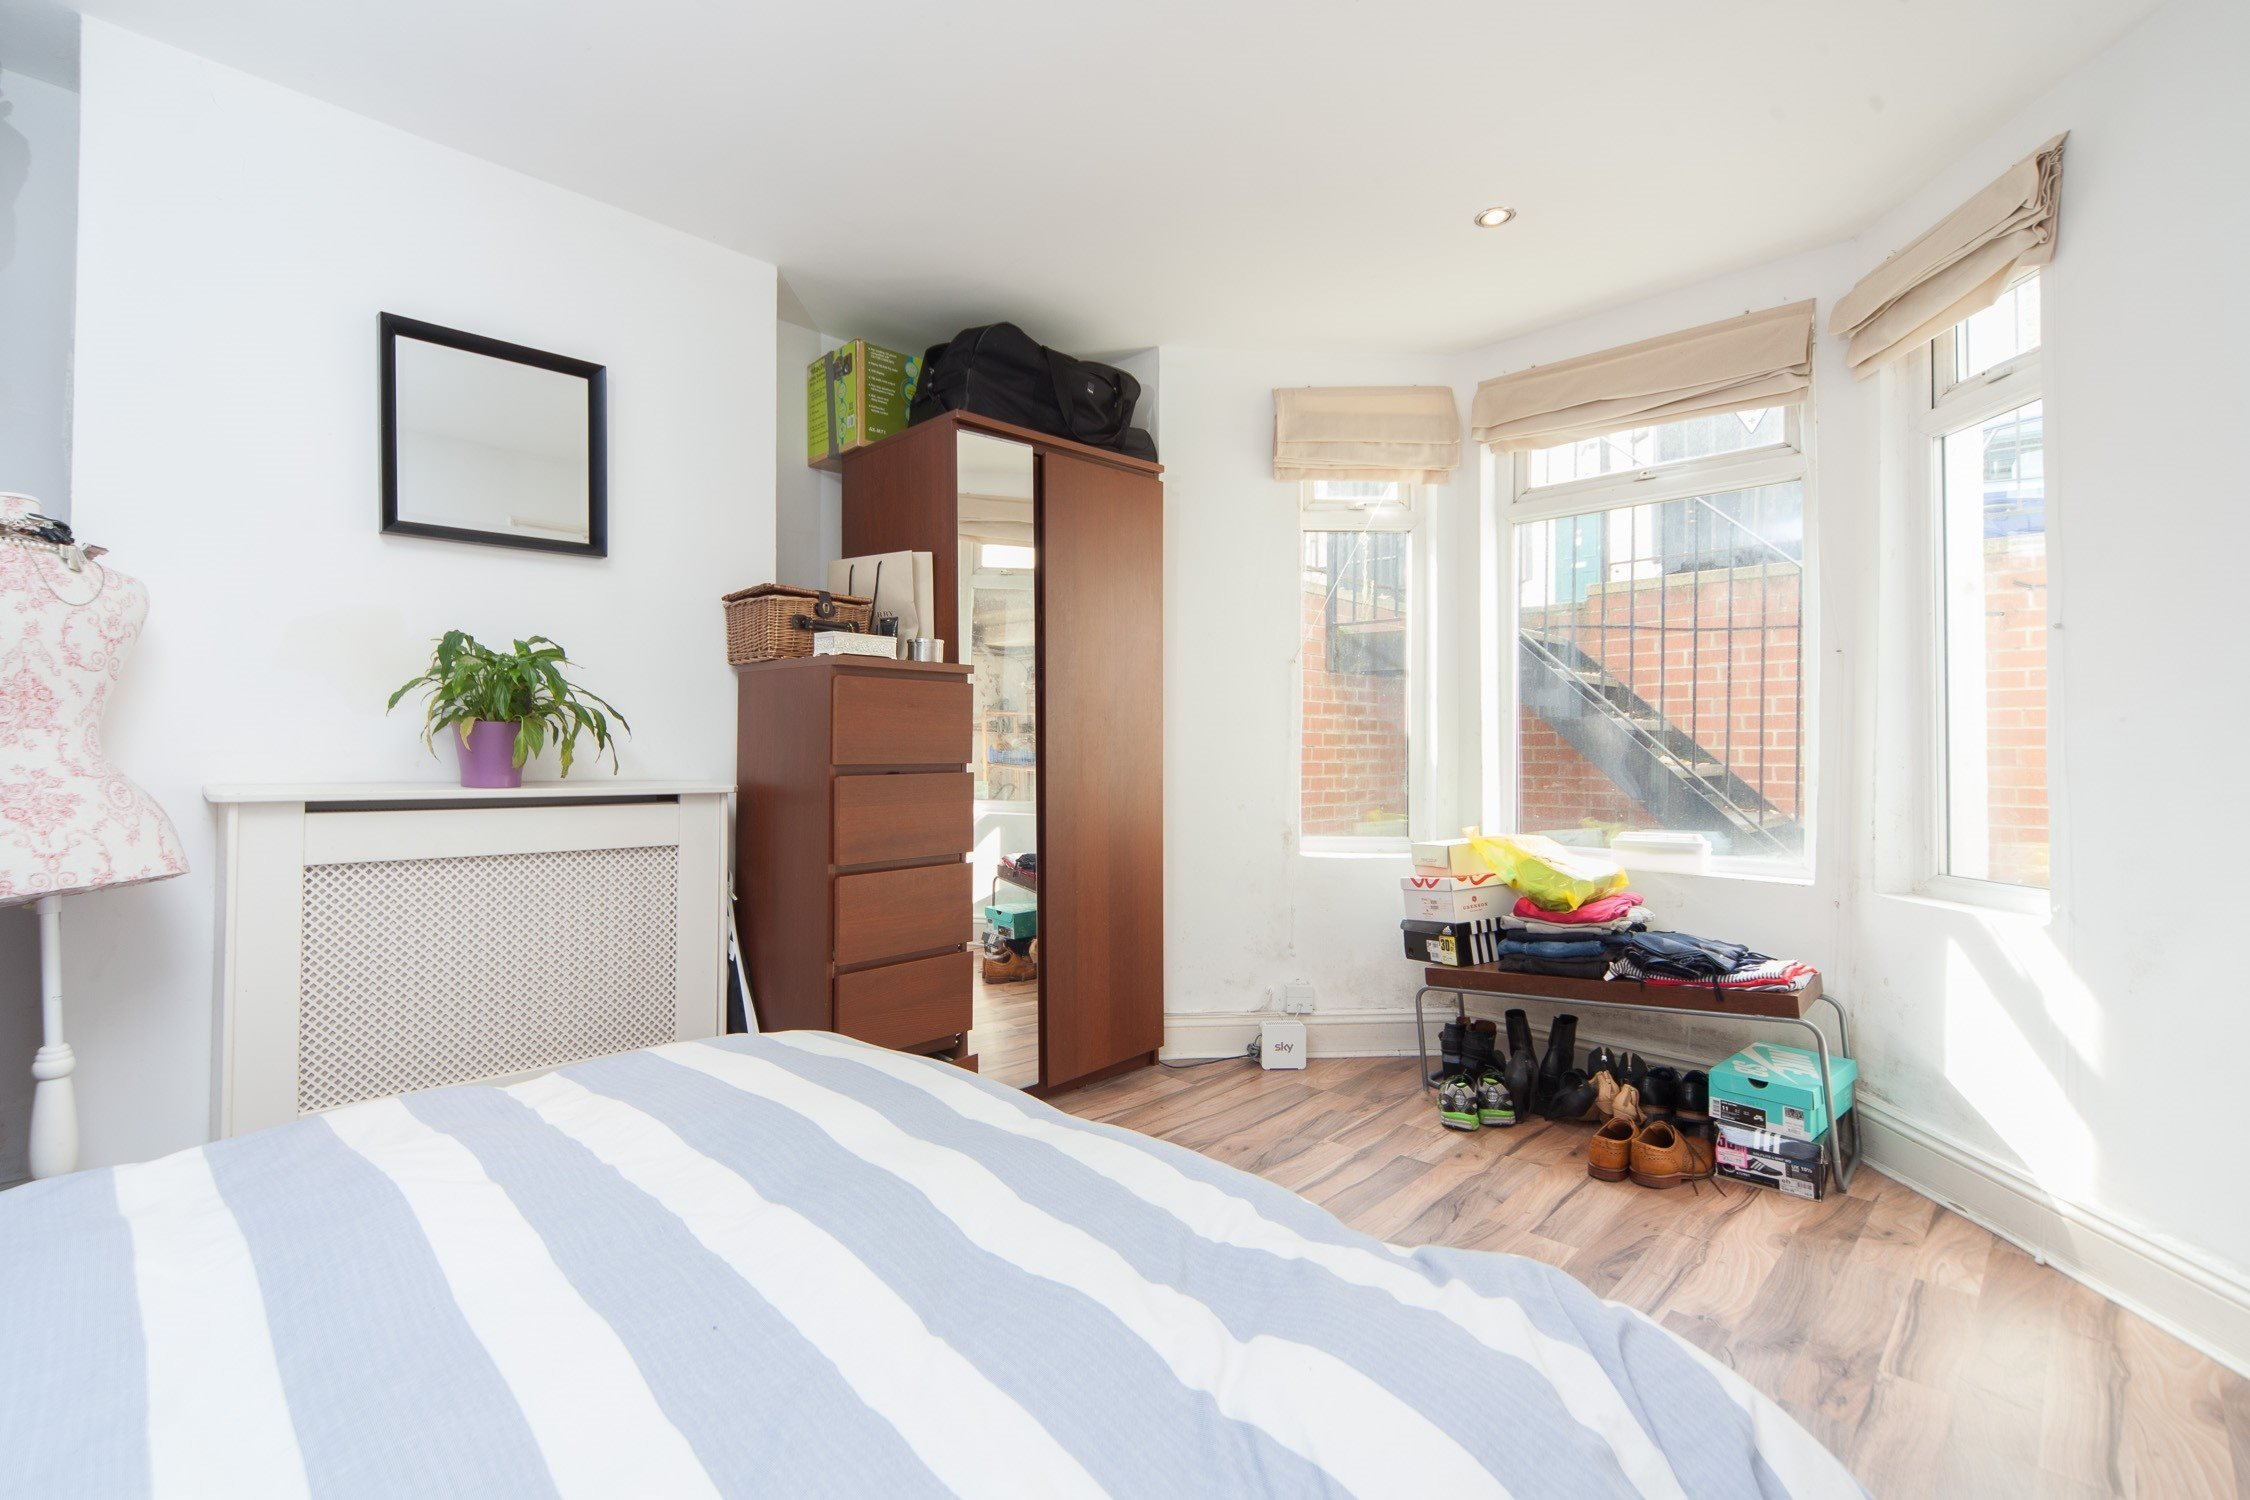 Best Portico 1 Bedroom Flat To Rent Under Offer In Brixton With Pictures Original 1024 x 768